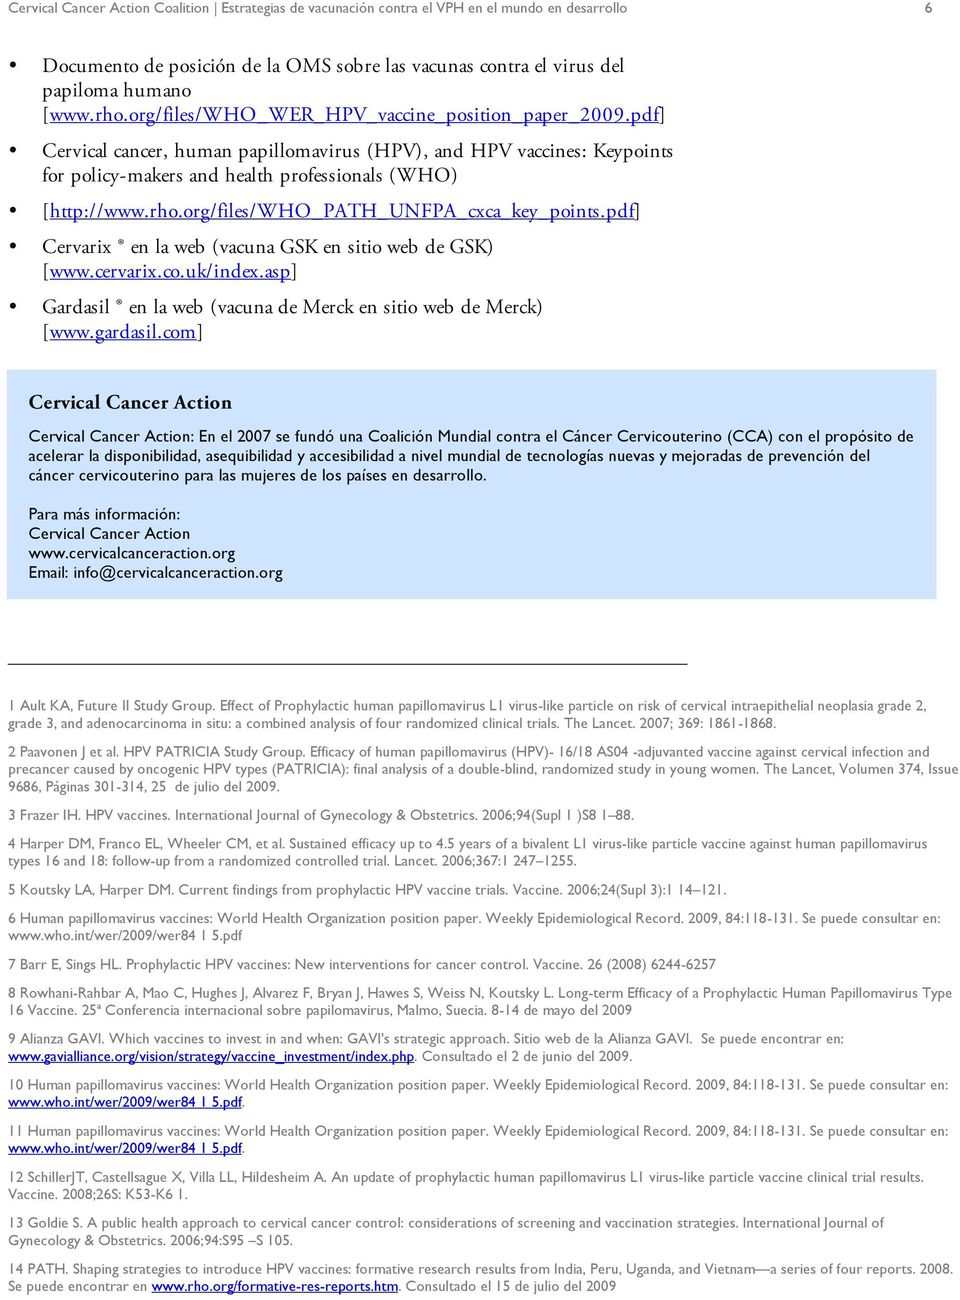 org/files/who_path_unfpa_cxca_key_points.pdf] Cervarix en la web (vacuna GSK en sitio web de GSK) [www.cervarix.co.uk/index.asp] Gardasil en la web (vacuna de Merck en sitio web de Merck) [www.